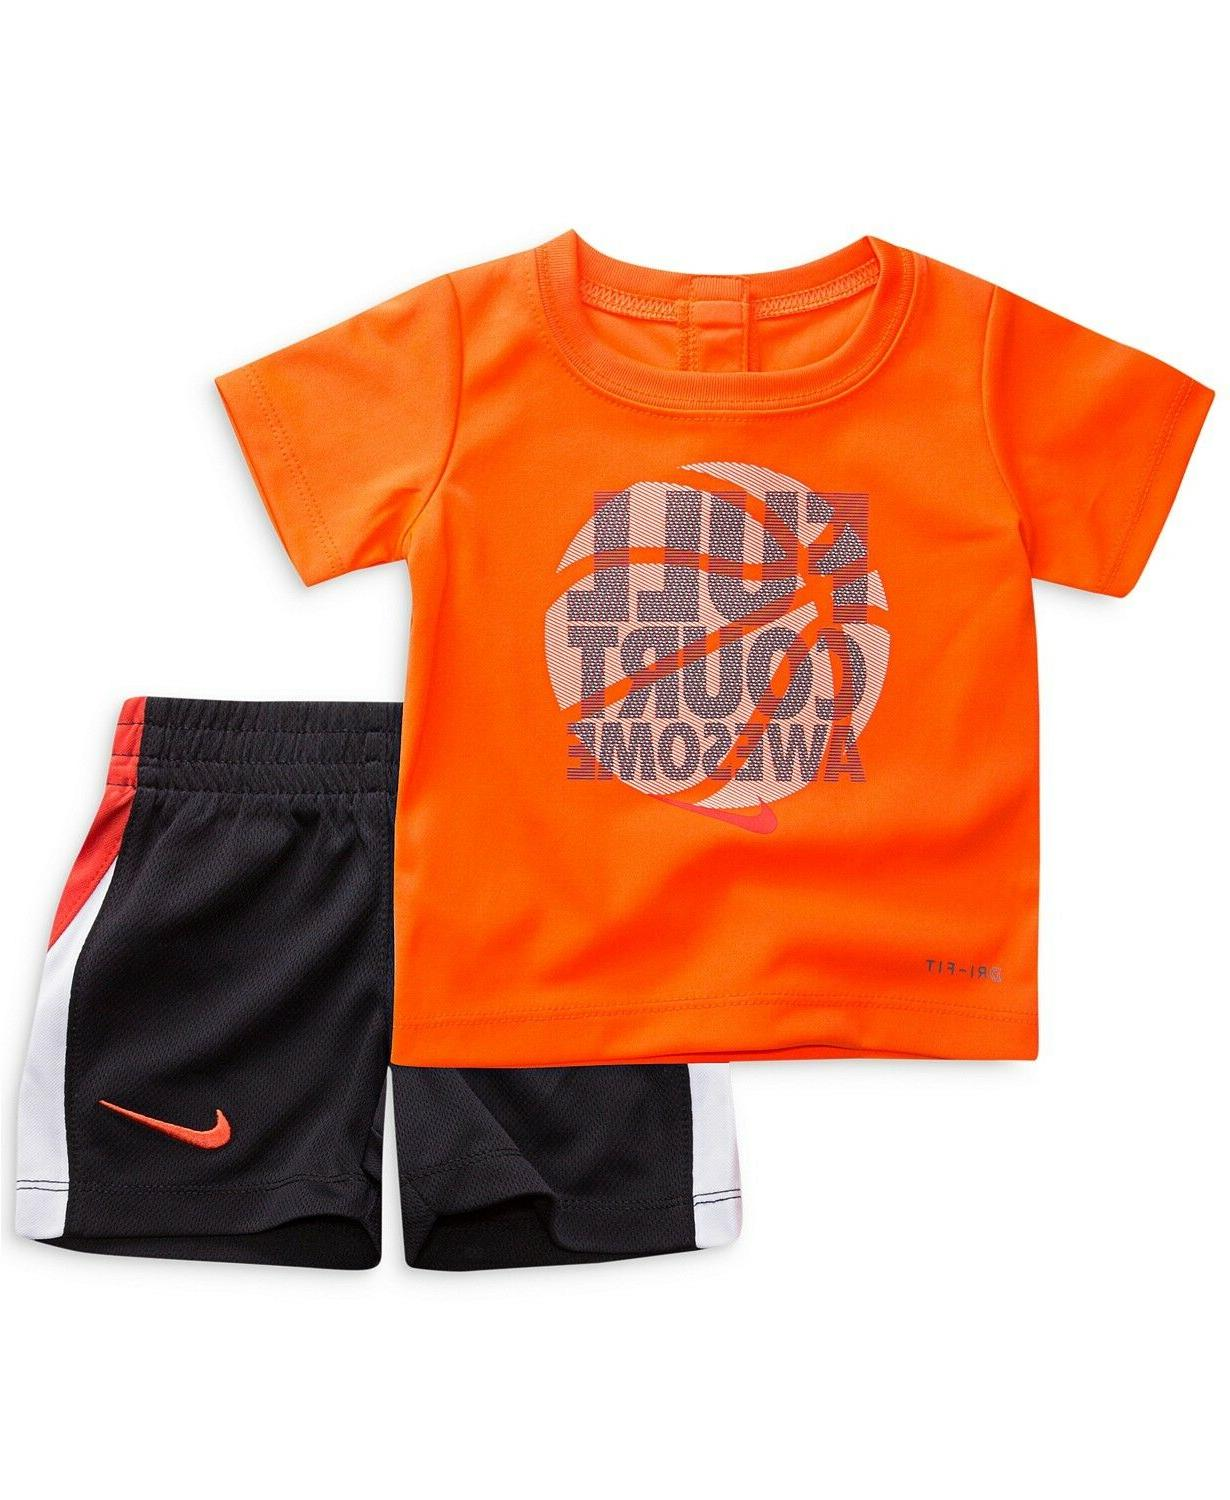 New Boys Swoosh Graphic Tee & Shorts and Color